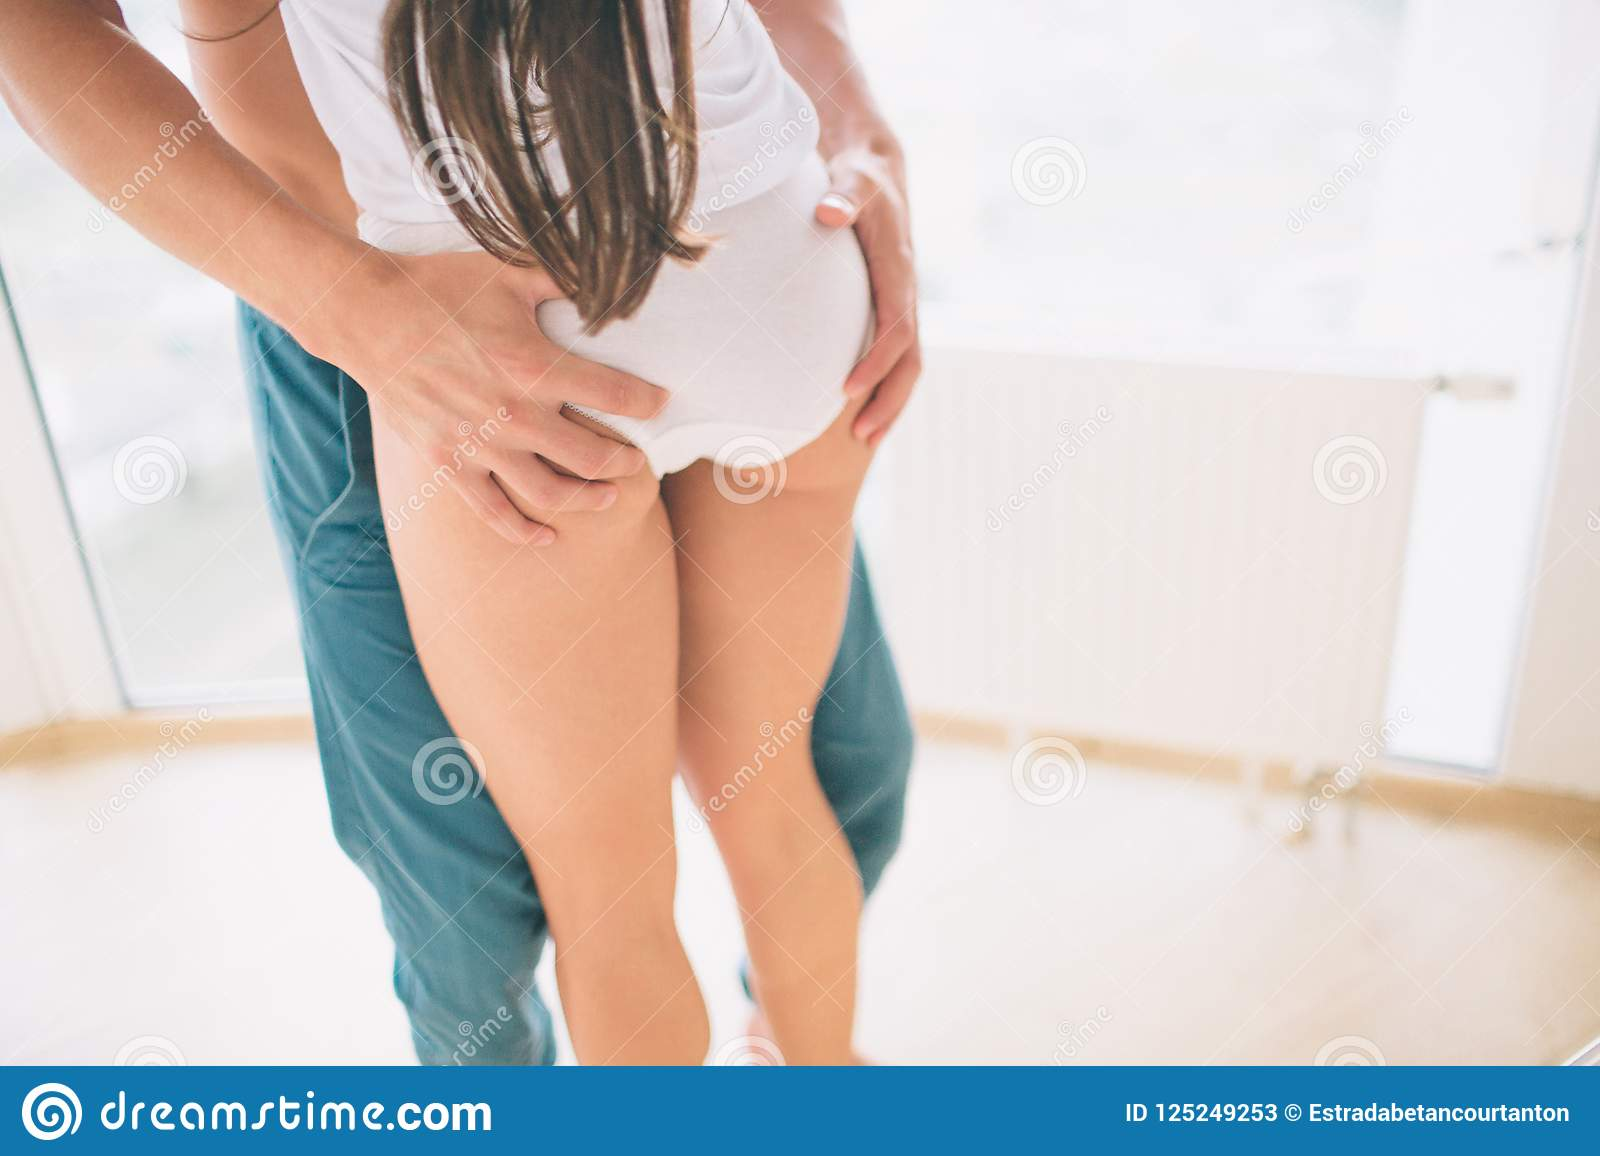 Muscl guy around sexy girls holding them Close Up Of Guy Holding Hands On Girl S Buttocks They Stand Very Close To Each Other Stock Image Image Of Body Muscular 125249253